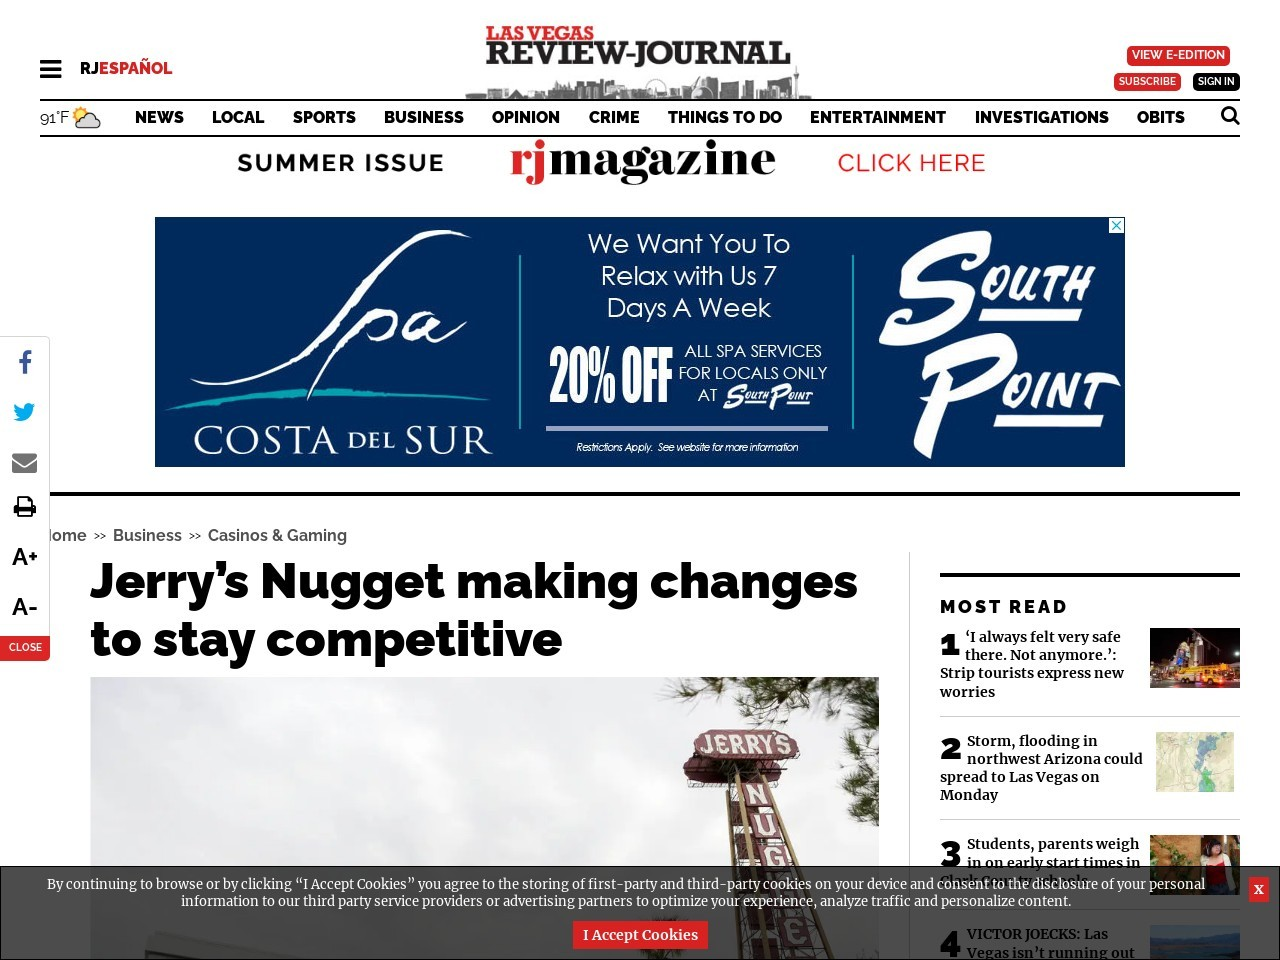 Jerry's Nugget making changes to stay competitive with other casinos